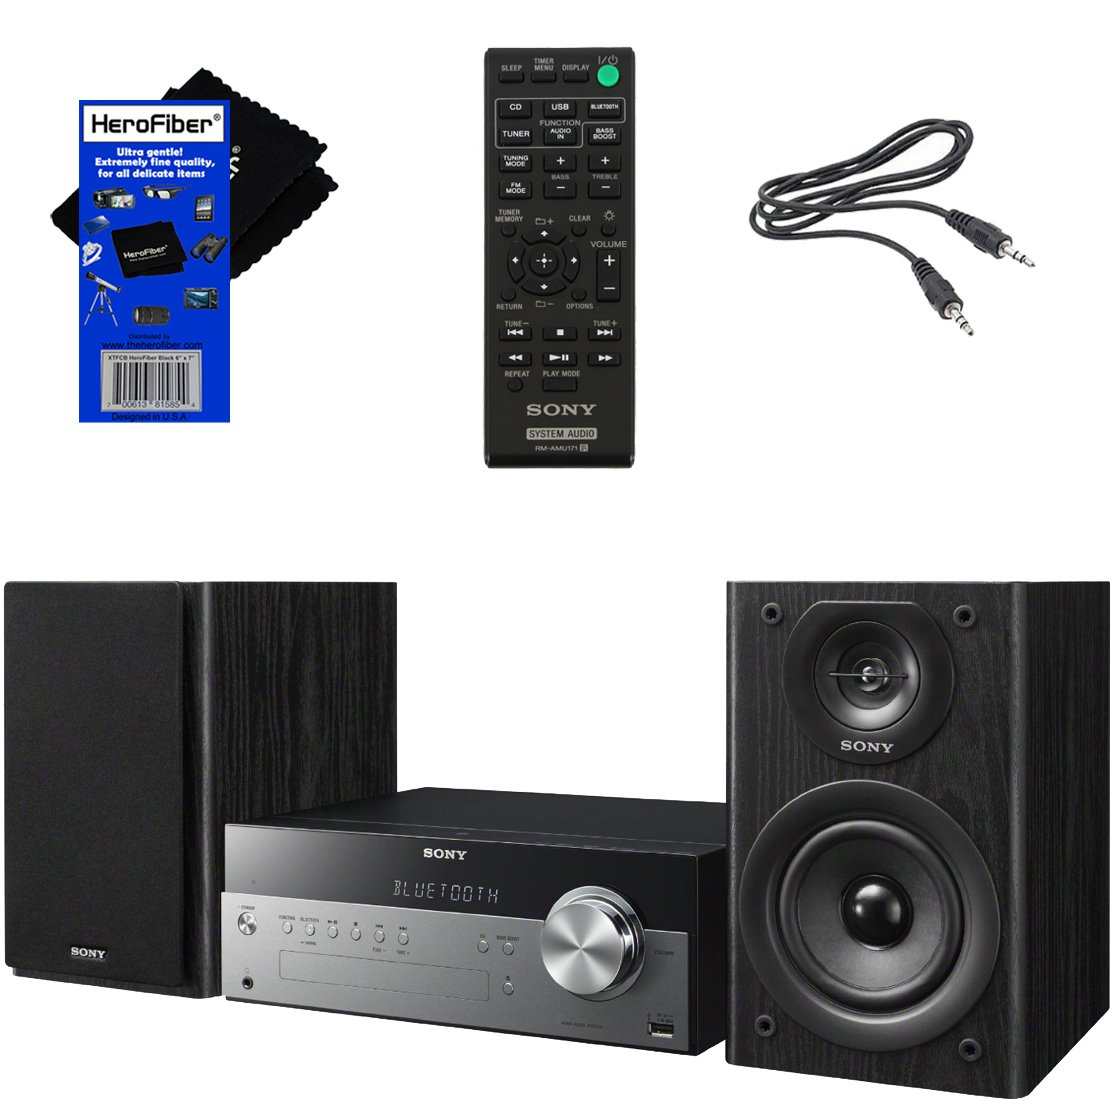 Sony All in One Stylish Micro Music Stereo System with Wireless Streaming NFC (Near Field Communications), Bluetooth, USB, CD Player & AM/FM Tuner + Remote + Aux Cable + HeroFiber Cleaning Cloth by HeroFiber